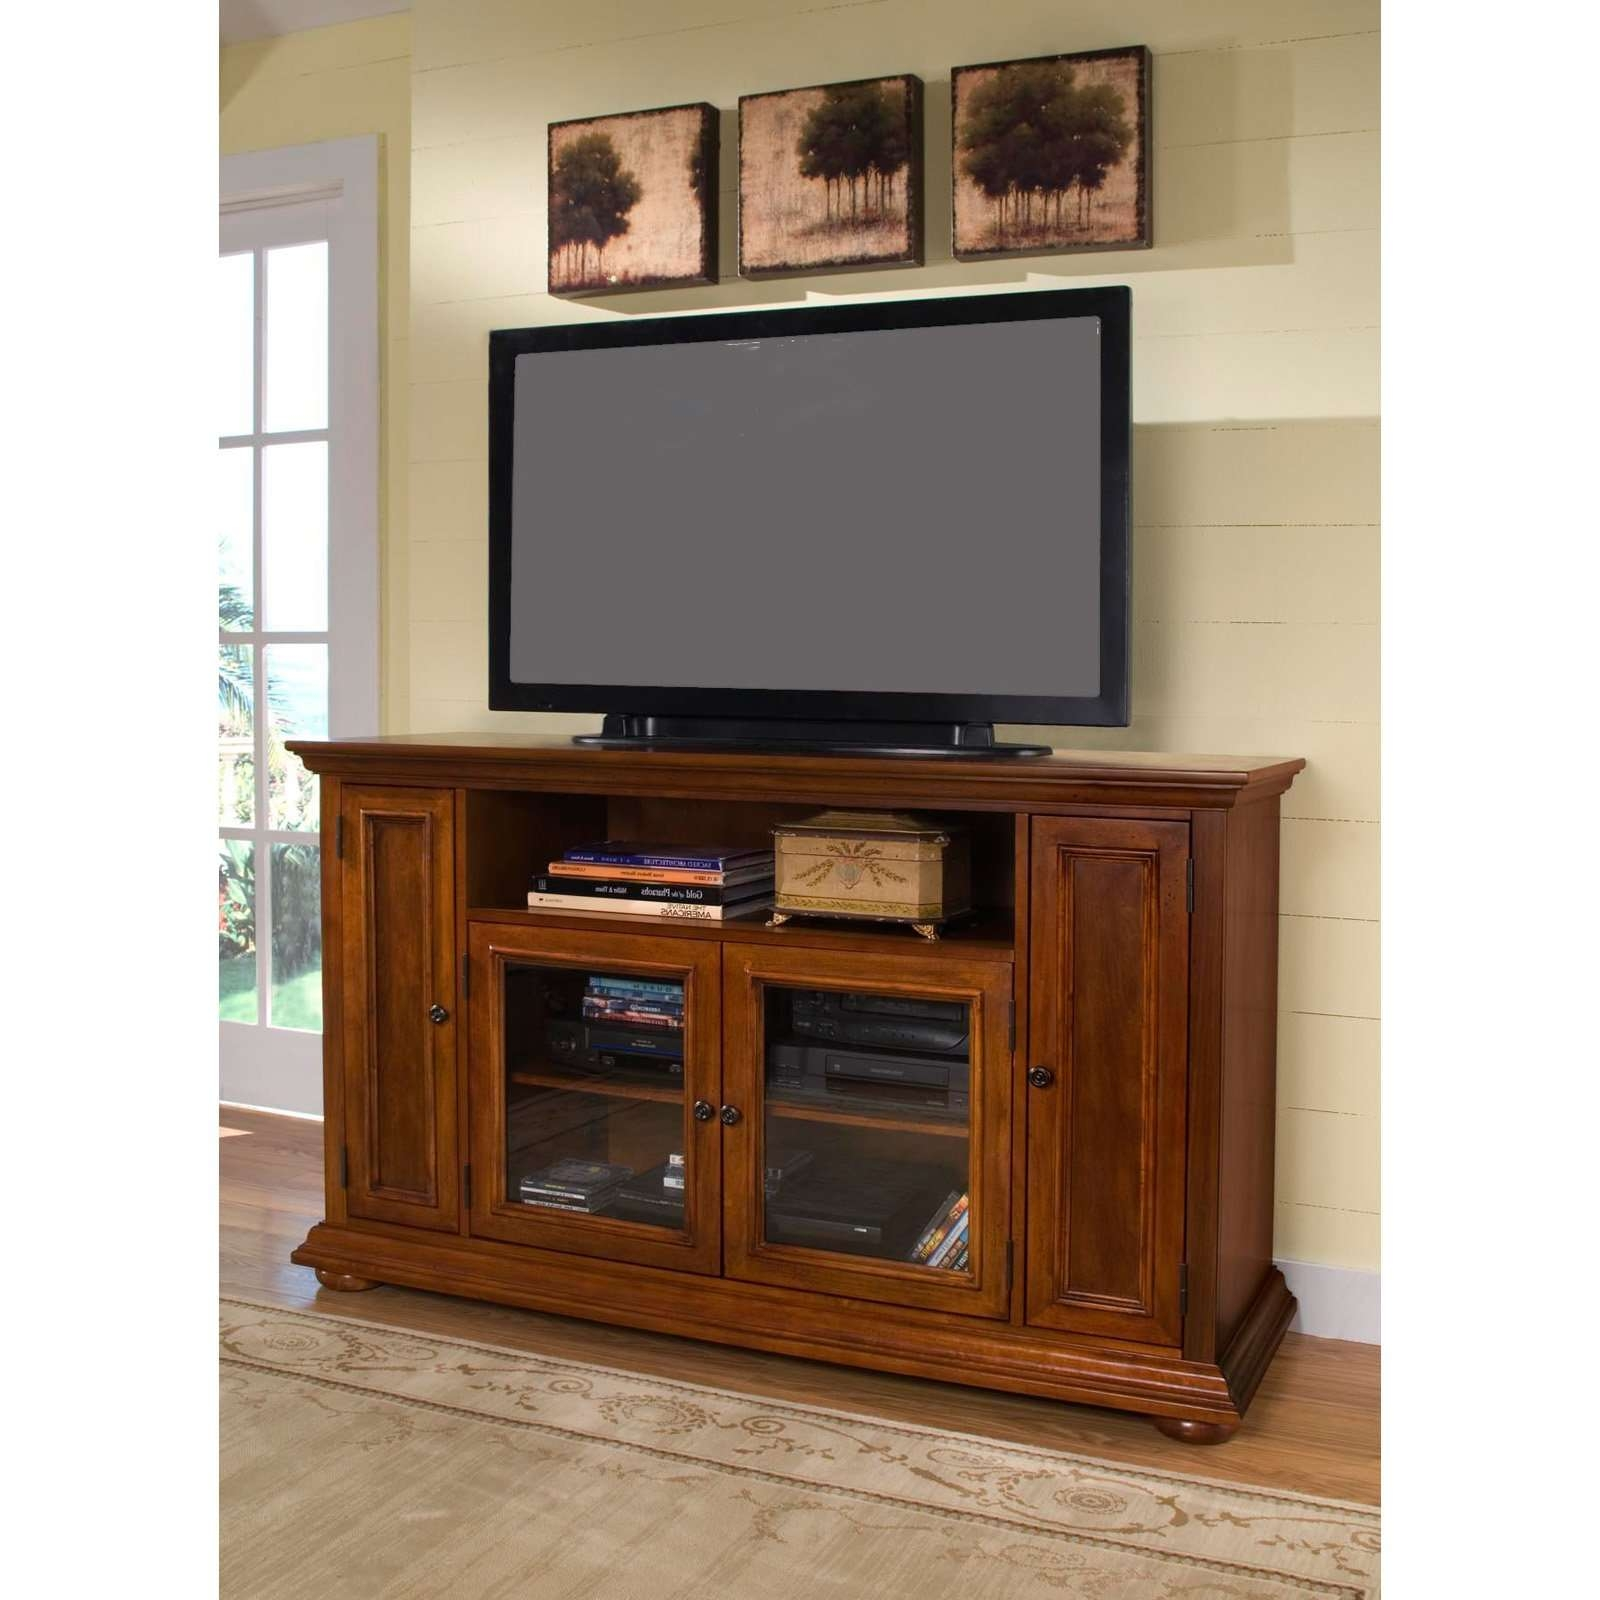 Home Decor: Marvelous Wood Tv Stands For Flat Screens Plus Light Pertaining To Oak Tv Stands For Flat Screen (View 6 of 15)